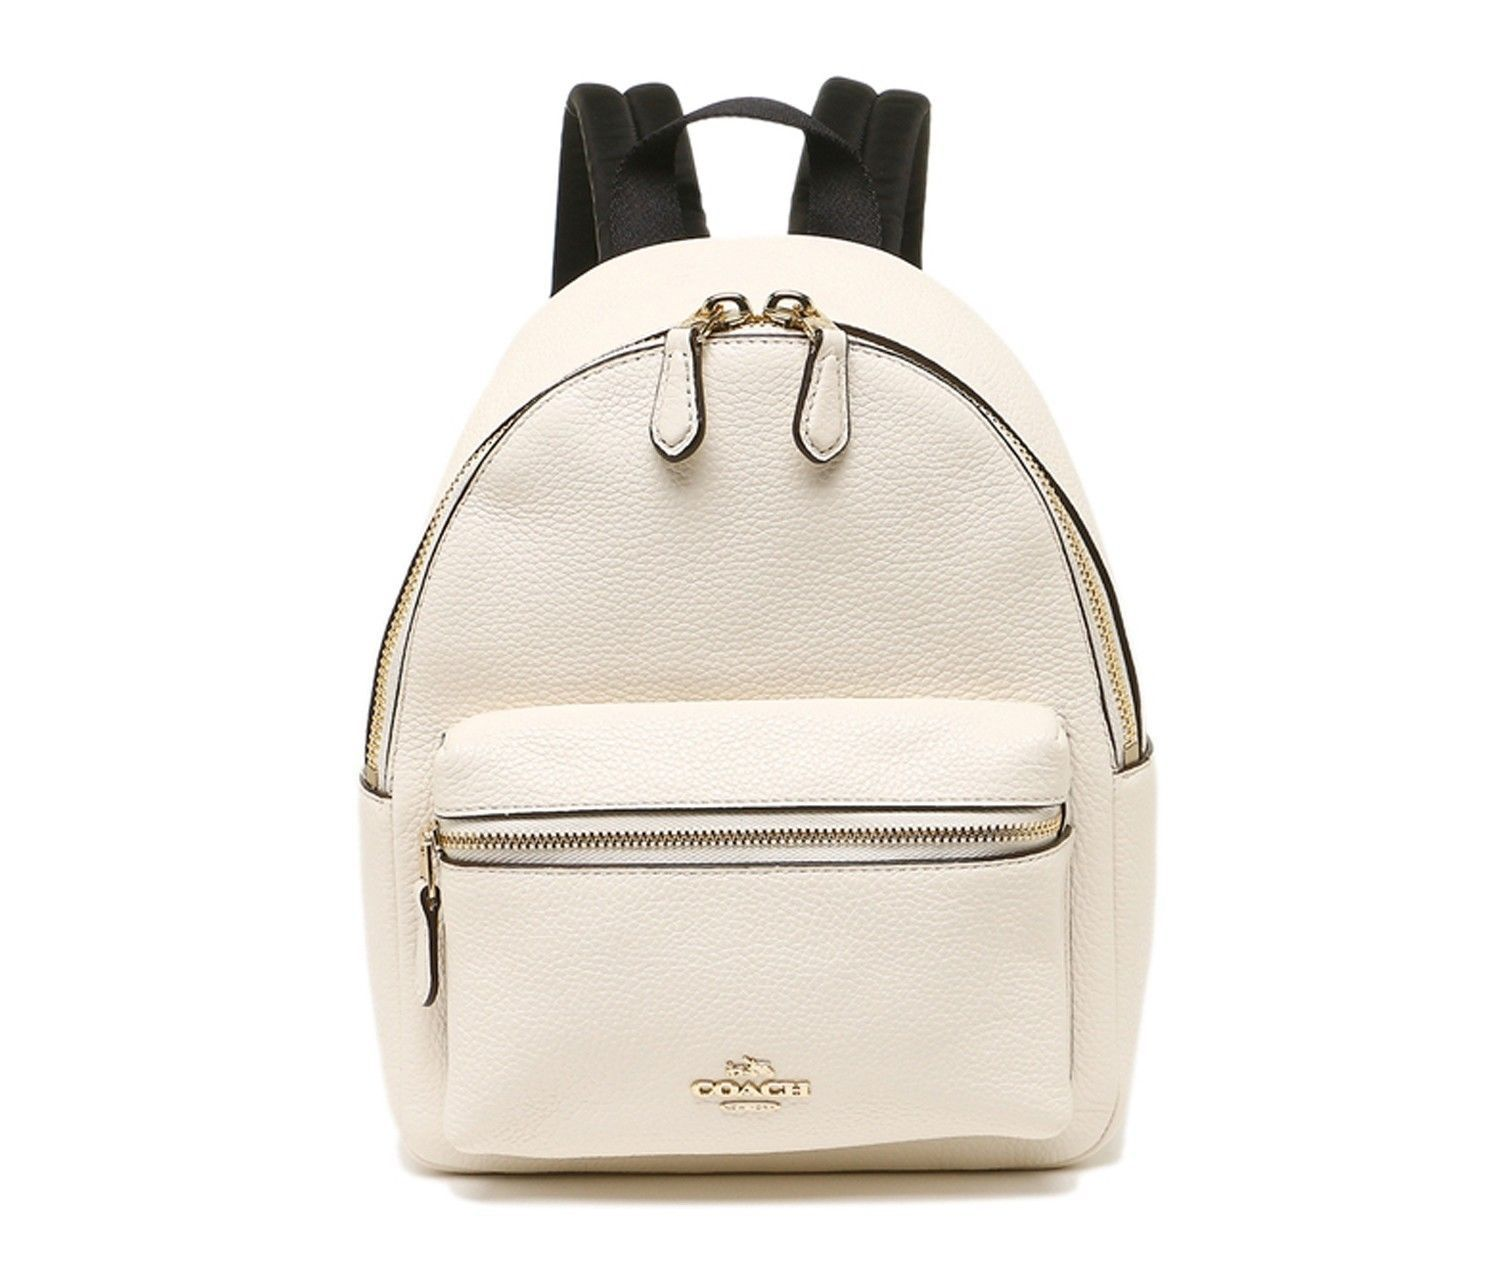 92a37a6706 57. 57. Previous. NEW COACH (F38263) CHALK WHITE MINI CHARLIE PEBBLED  LEATHER BACKPACK BAG